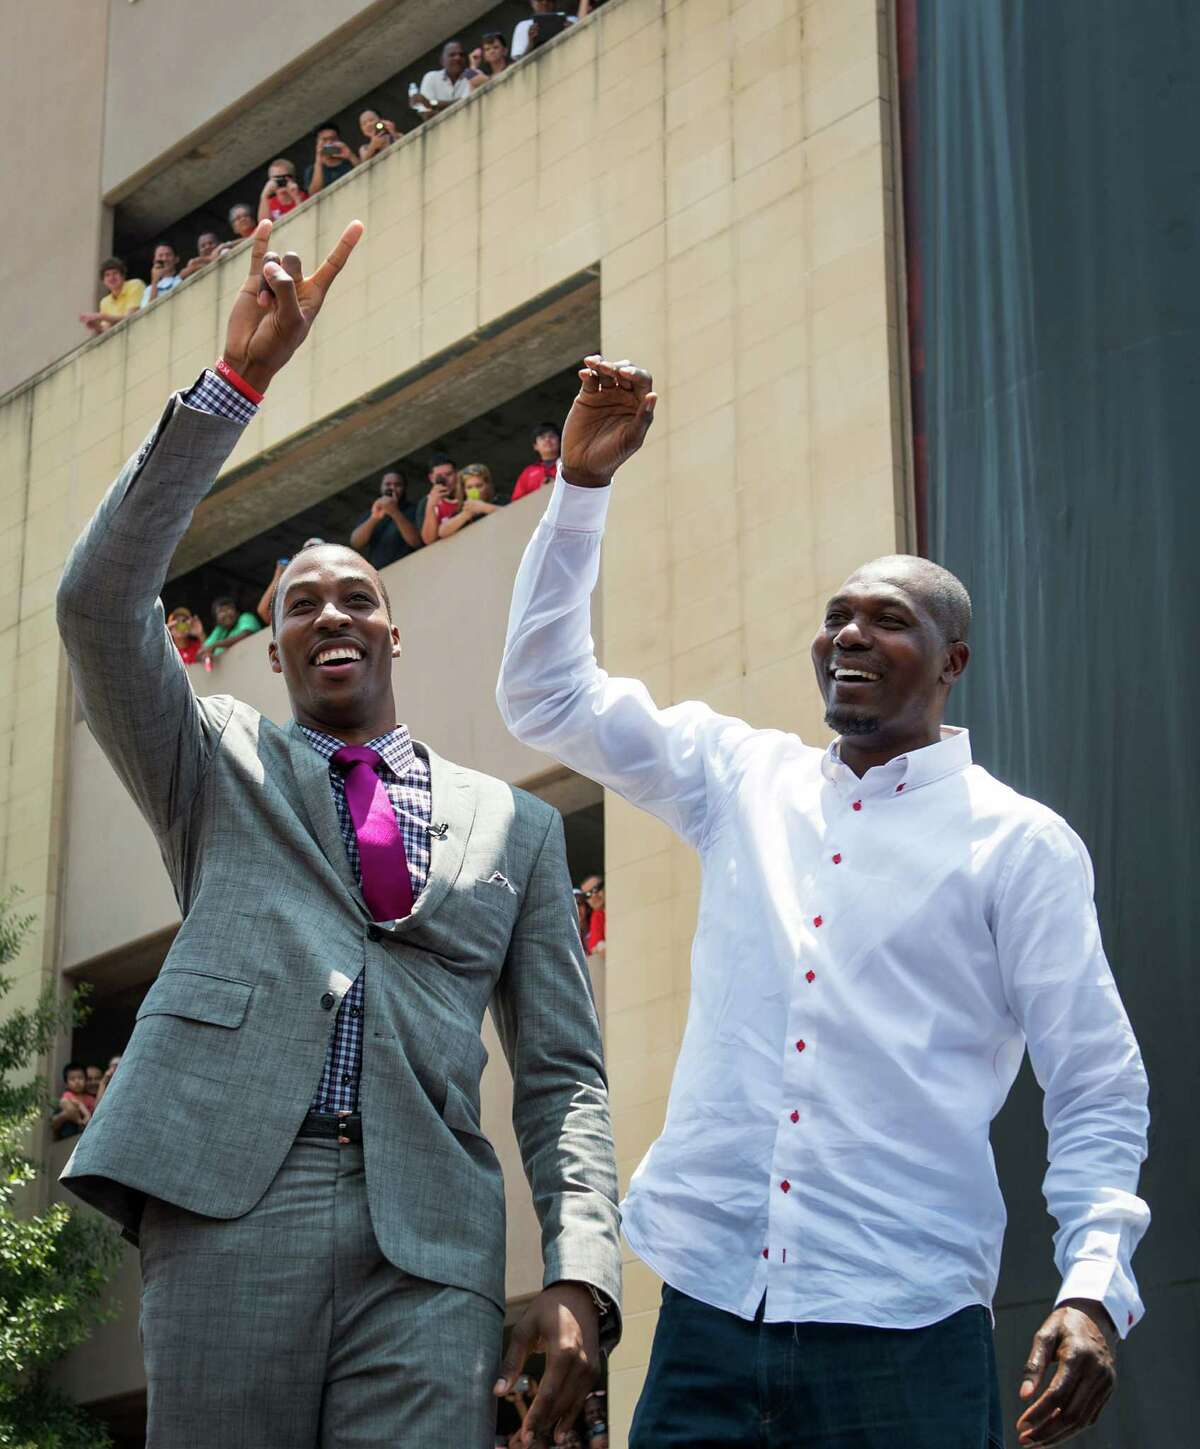 In happier times, Dwight Howard (left) was joined by Rockets legend Hakeem Olajuwon after the former signed with the team in 2013. Click through the gallery to relive Howard's time in Houston.